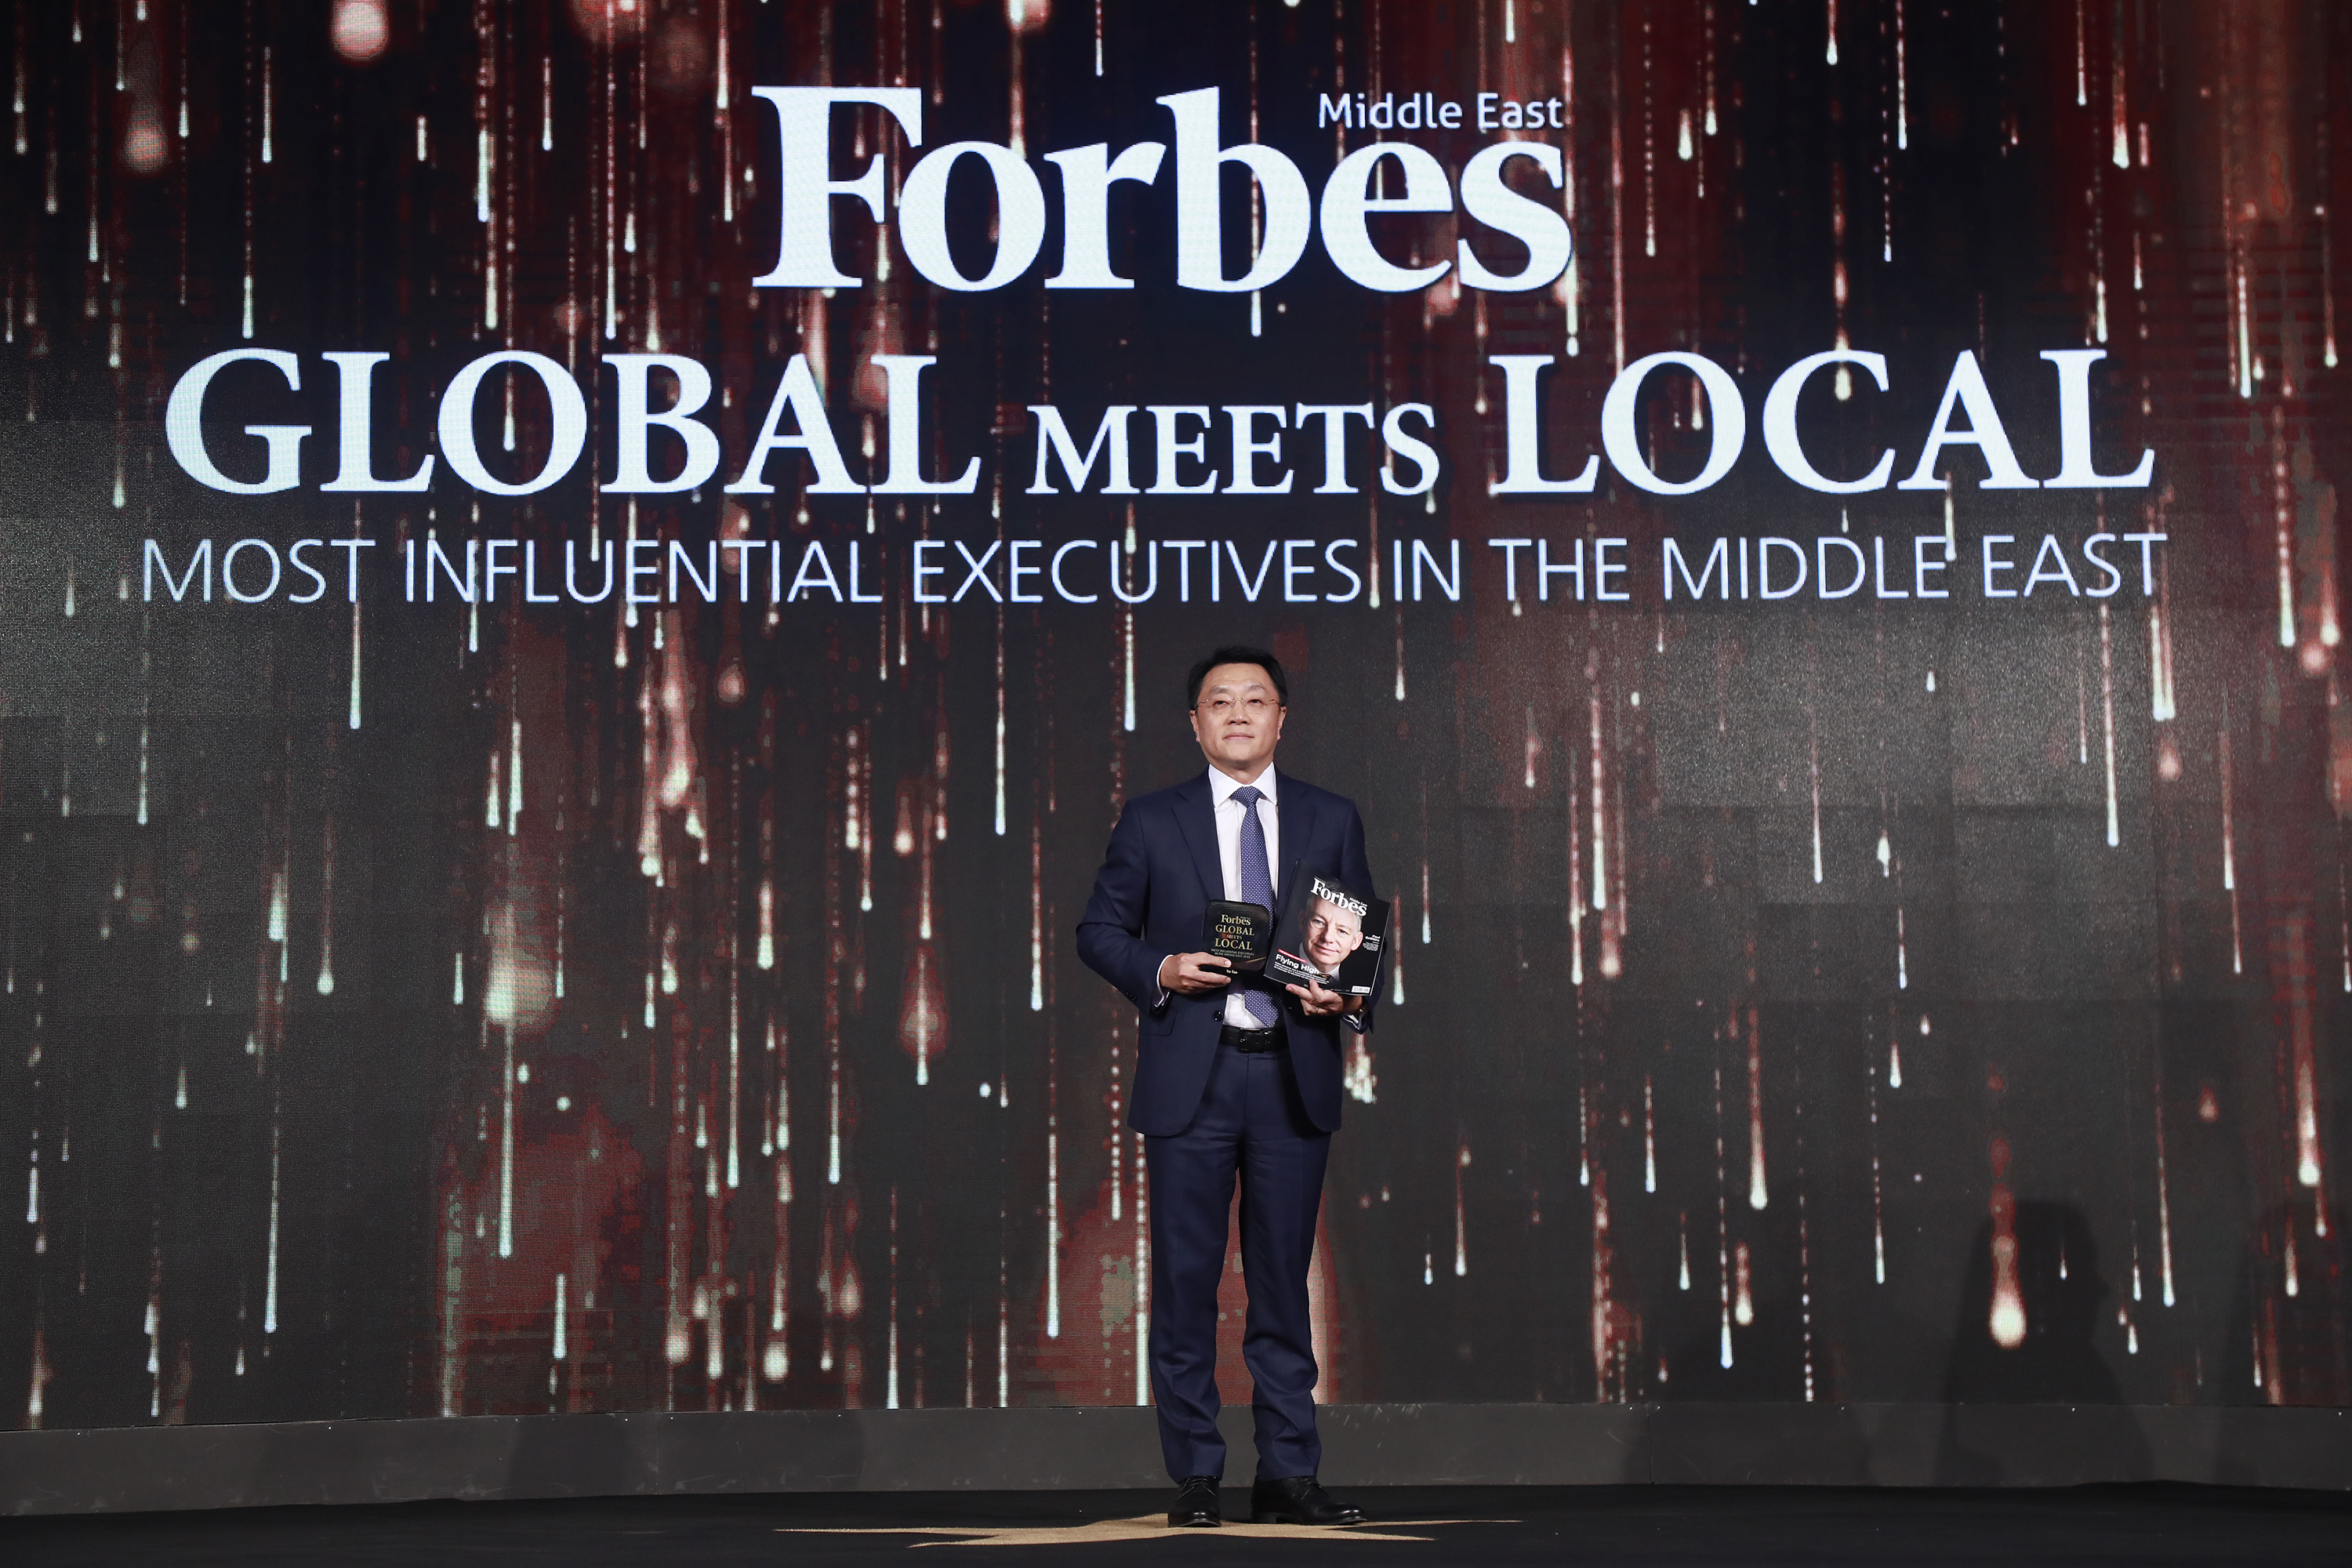 Yu Tao Ranked No. 9th on Forbes's List of the Top 50 Regional Executives Heading Global Companies